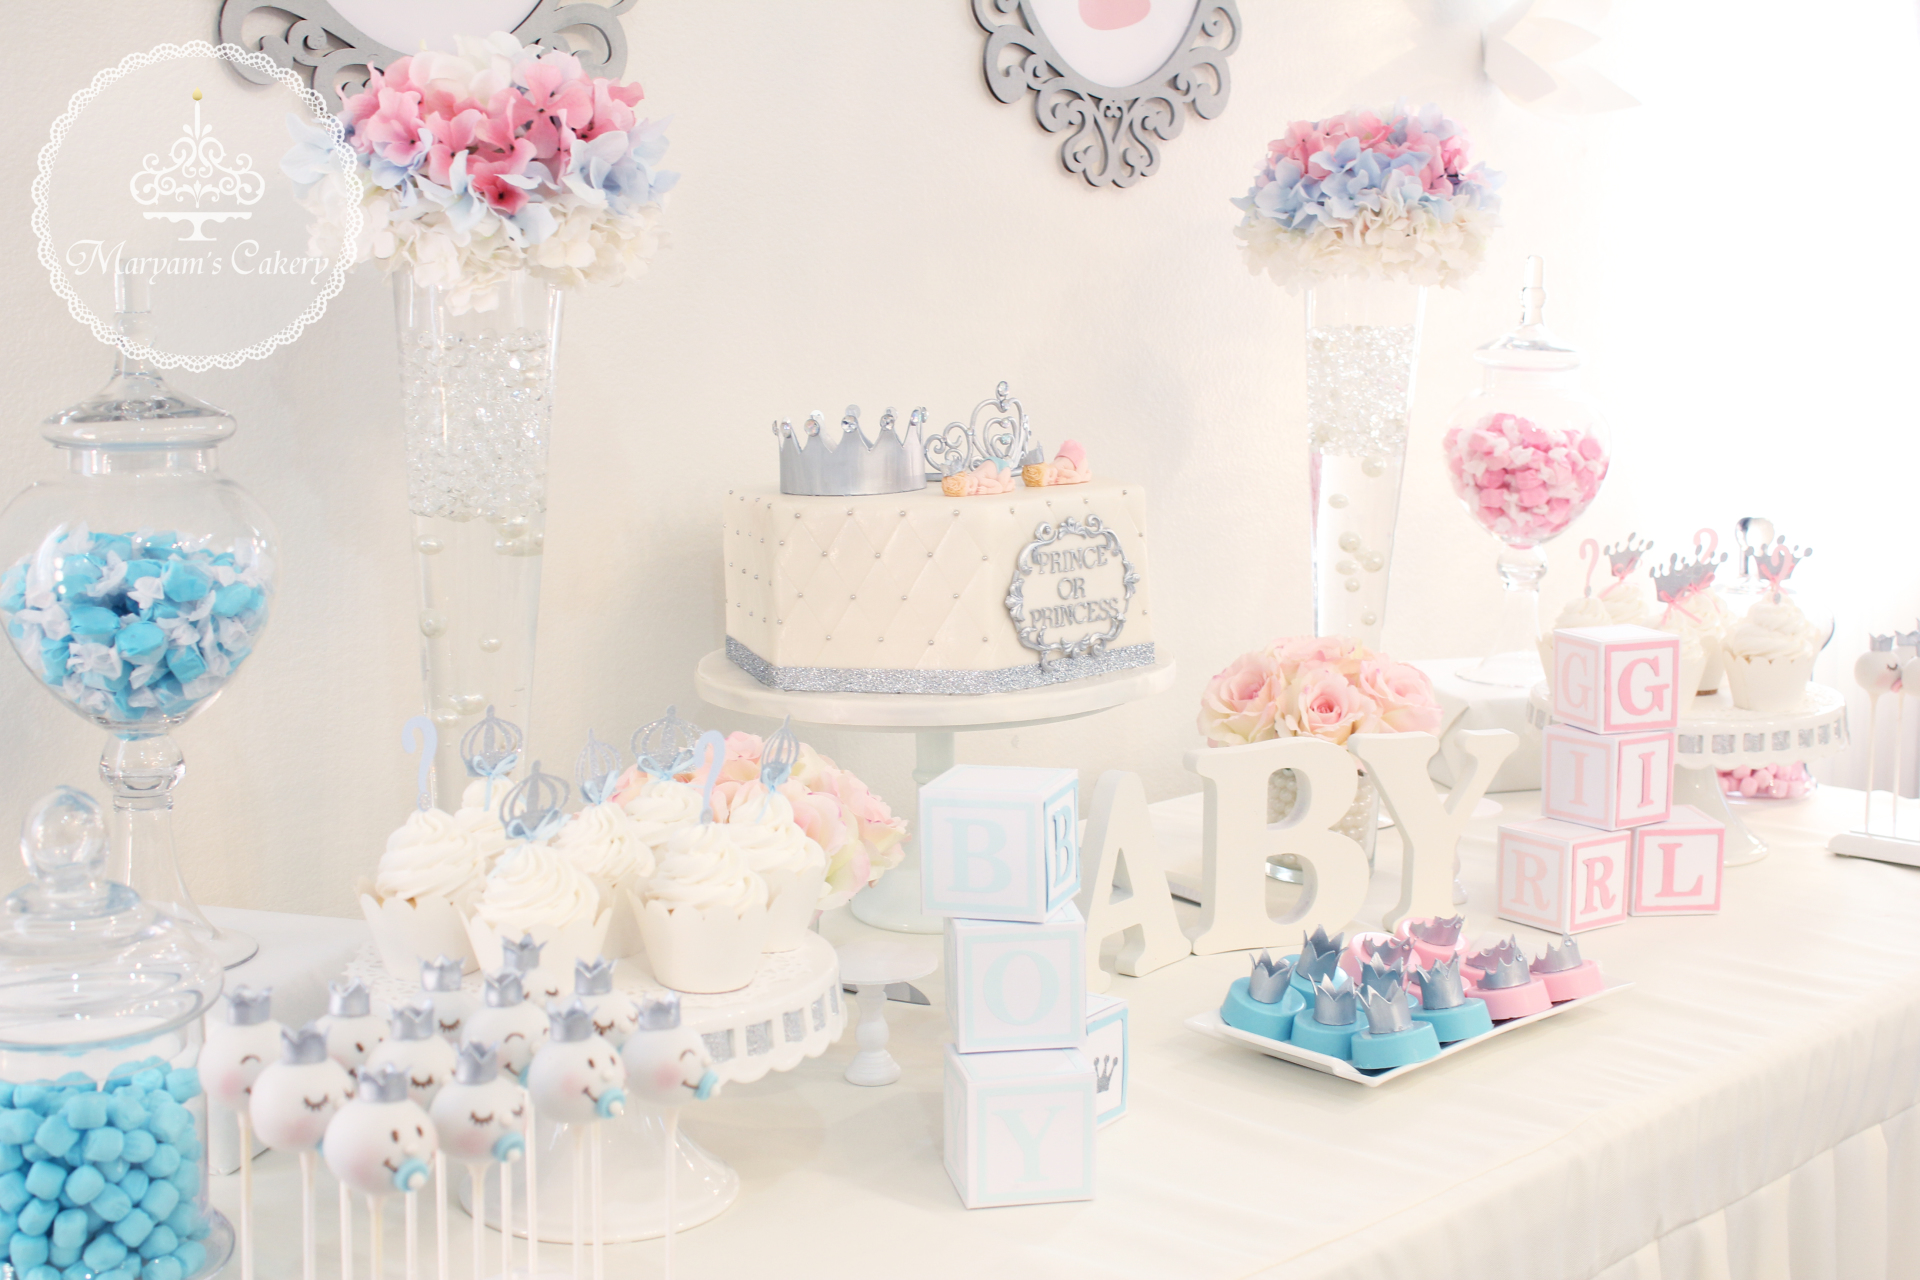 Adorable gender reveal party